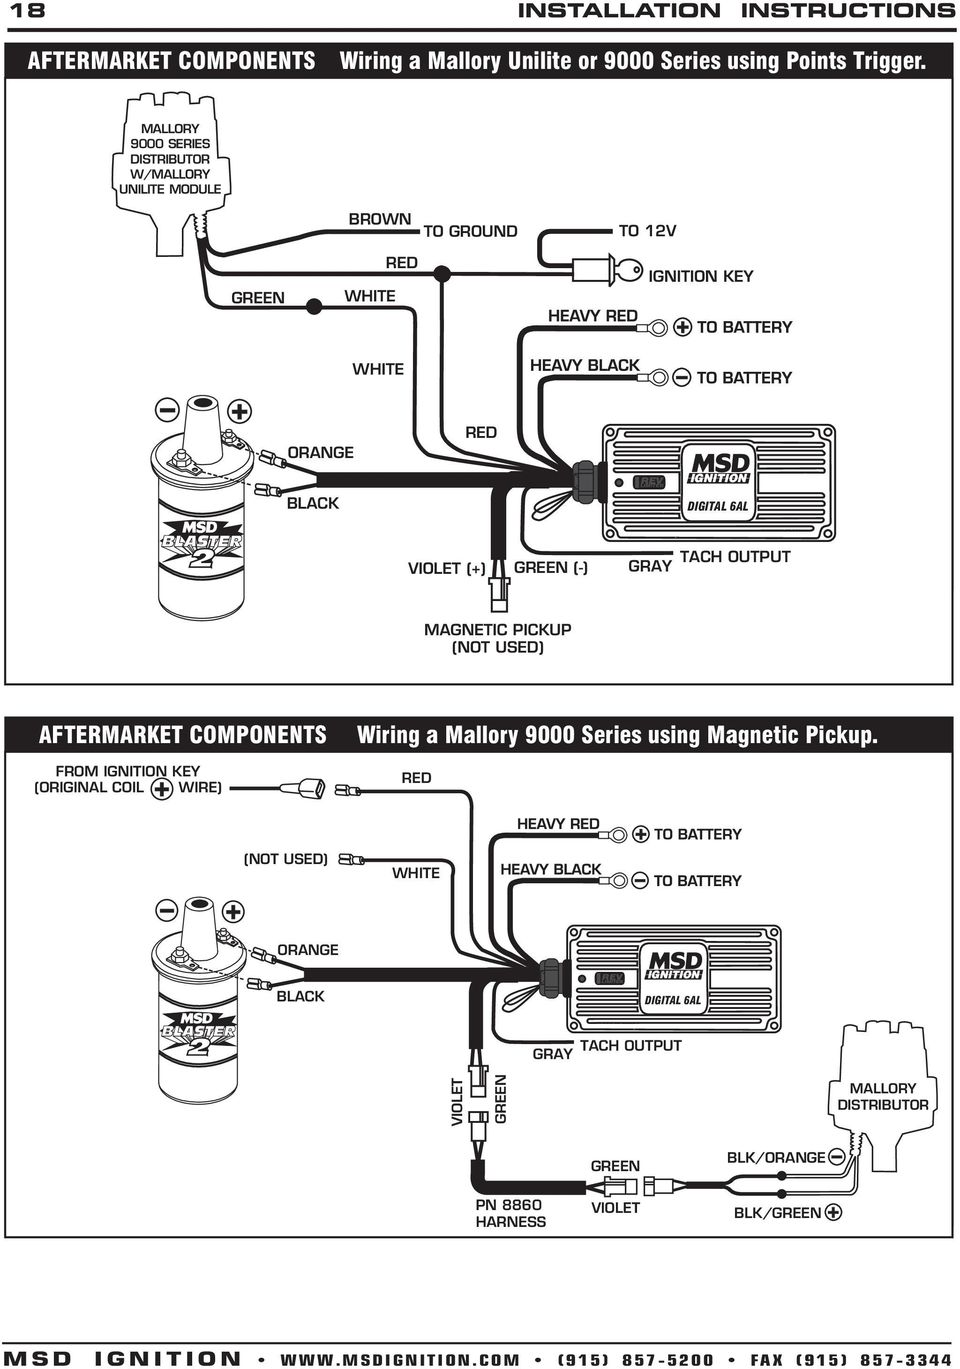 Msd Digital 6a And 6al Ignition Control Pn 6201 Pdf Mallory Electronic Distributor Wiring Diagram 9000 Series W Unilite Module Brown To Ground 12v Green Key